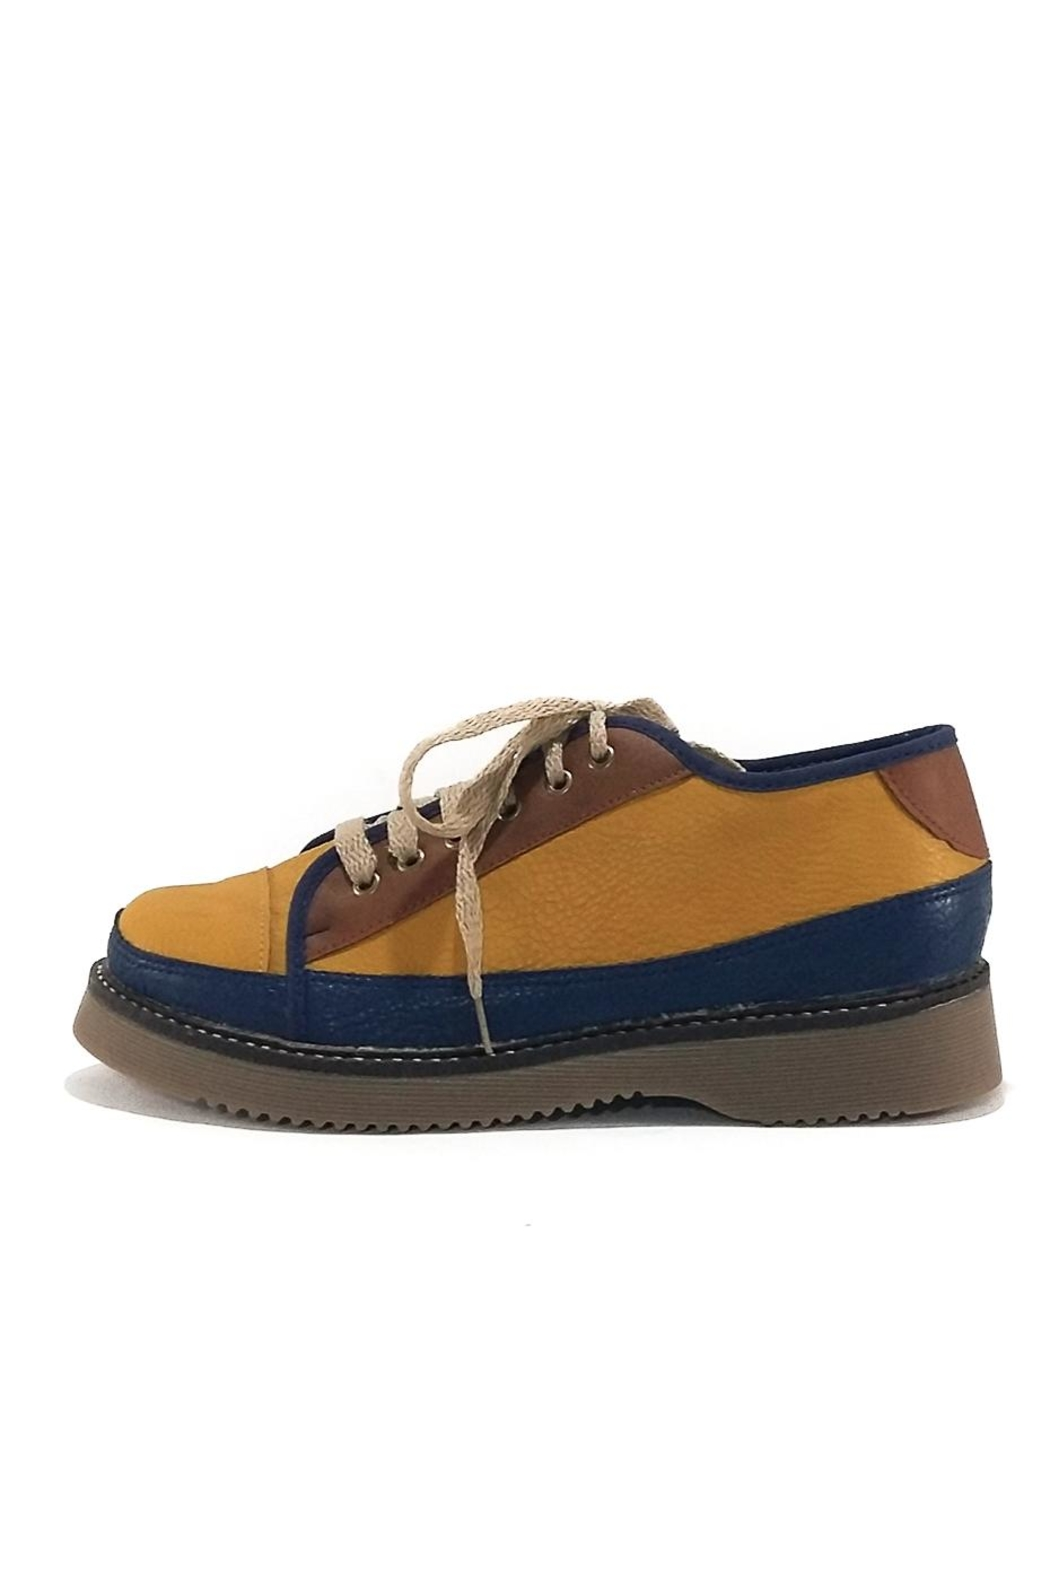 MIYE COLLAZZO Yellow Attitude Sneakers - Front Full Image